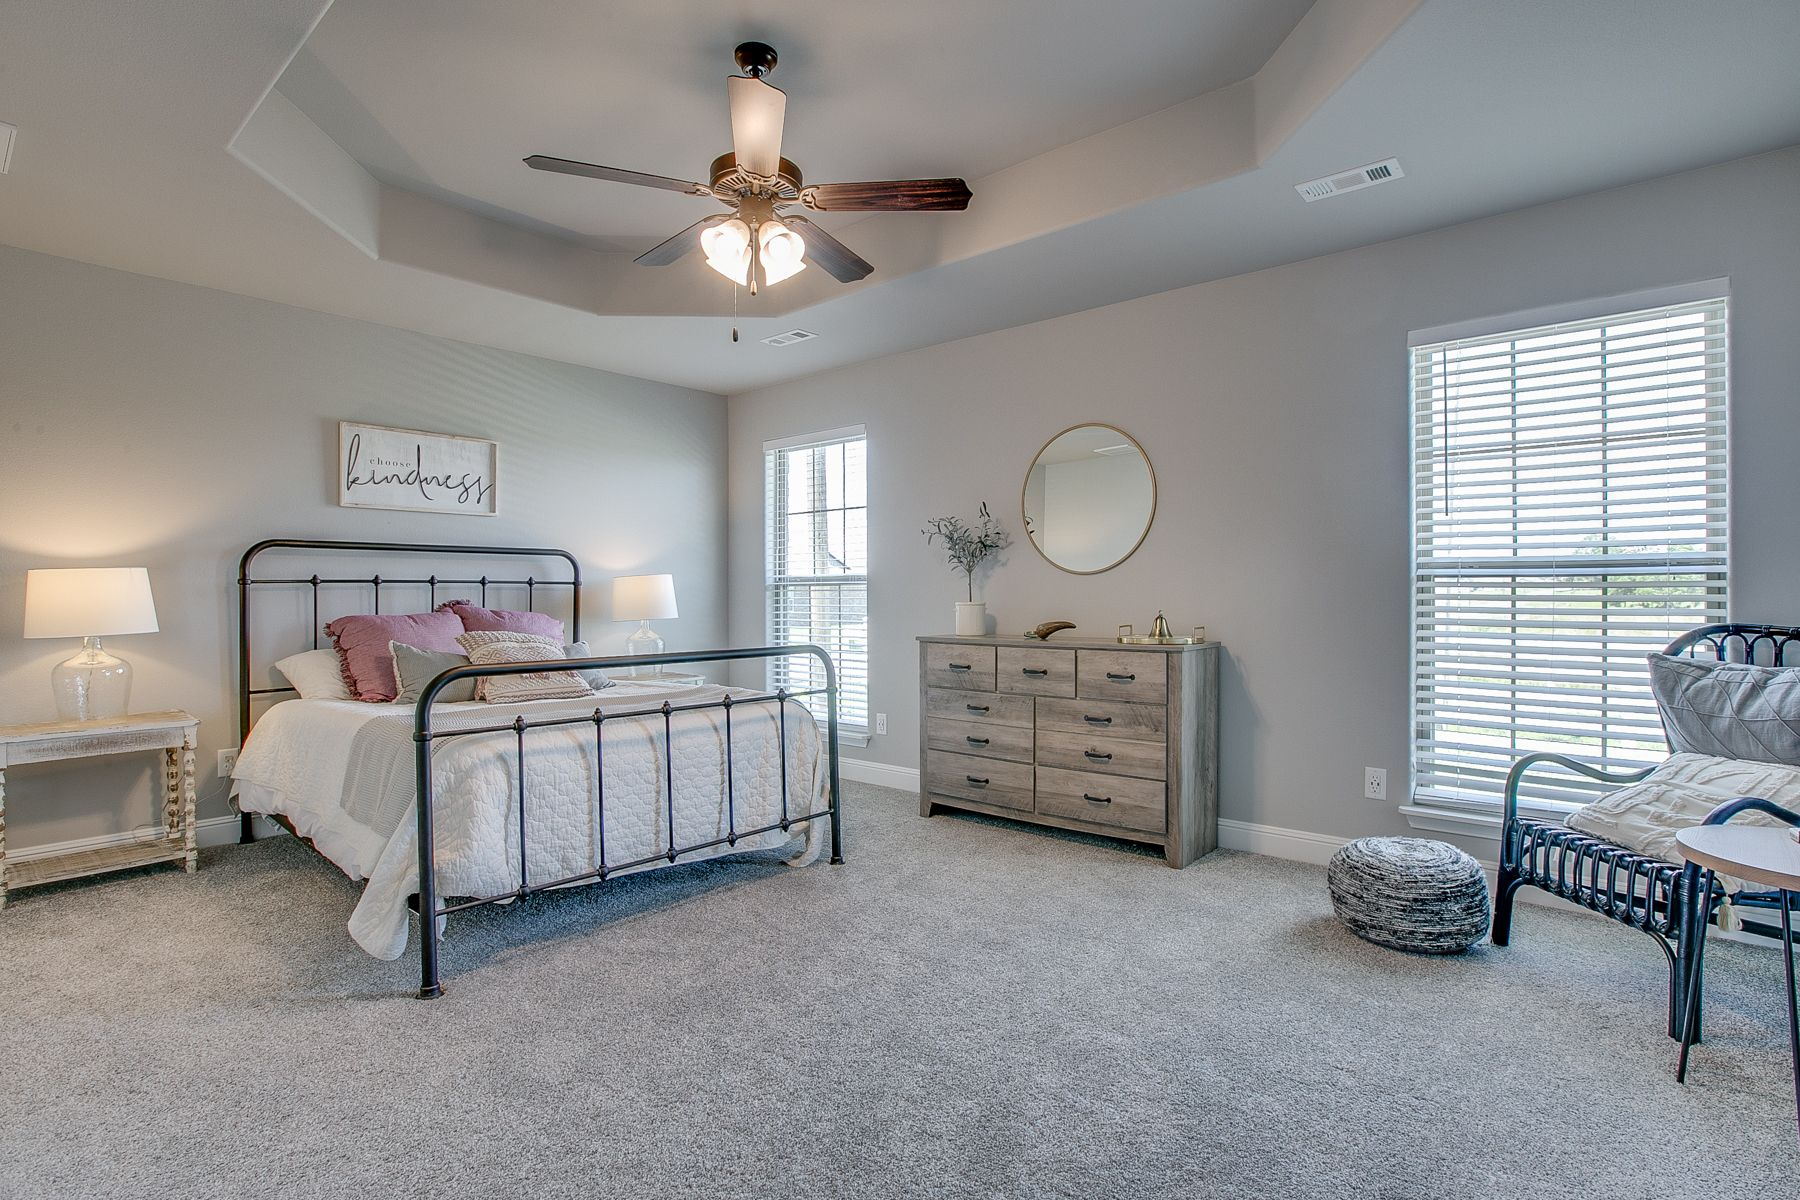 Bedroom featured in the 1700KI Series By Schuber Mitchell Homes in Fayetteville, AR